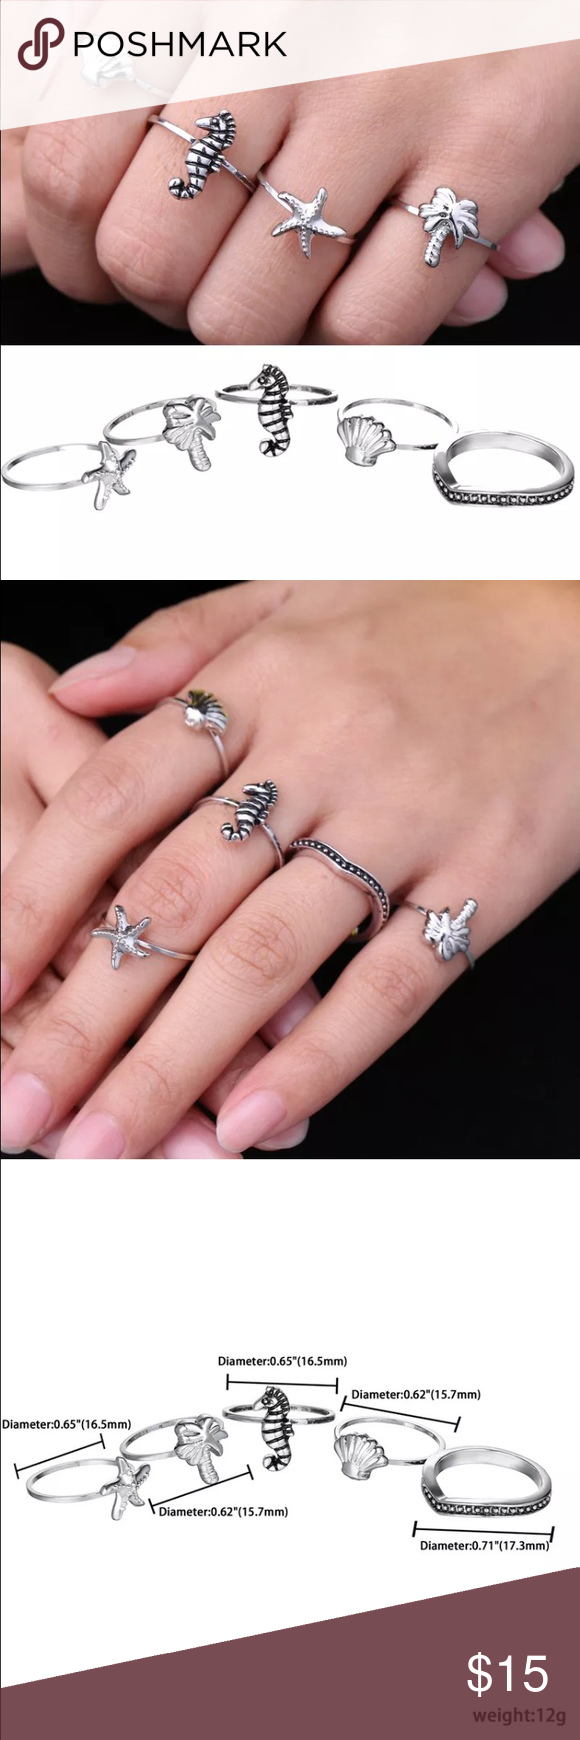 SILVER 5 pc Ring Beach Set SIZE 7 Boutique | Pinterest | Tree ...